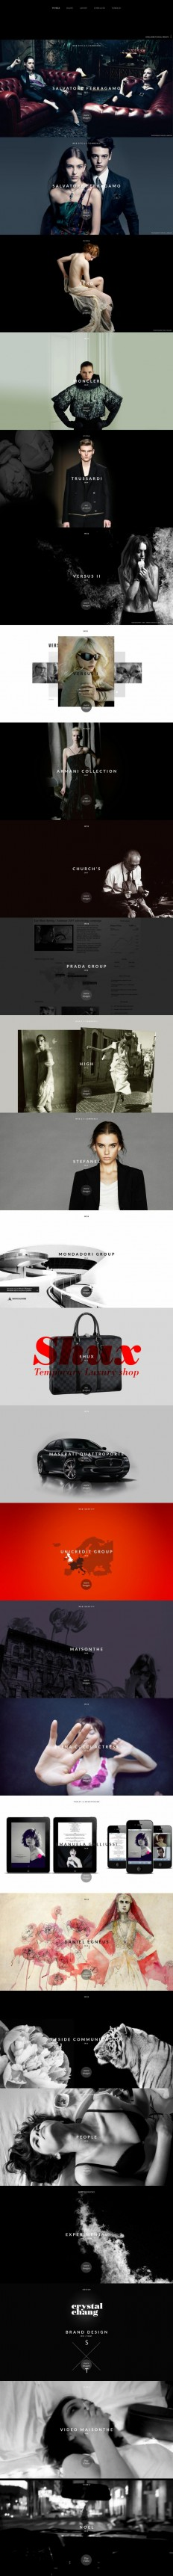 simply design | Digital Design | Pinterest